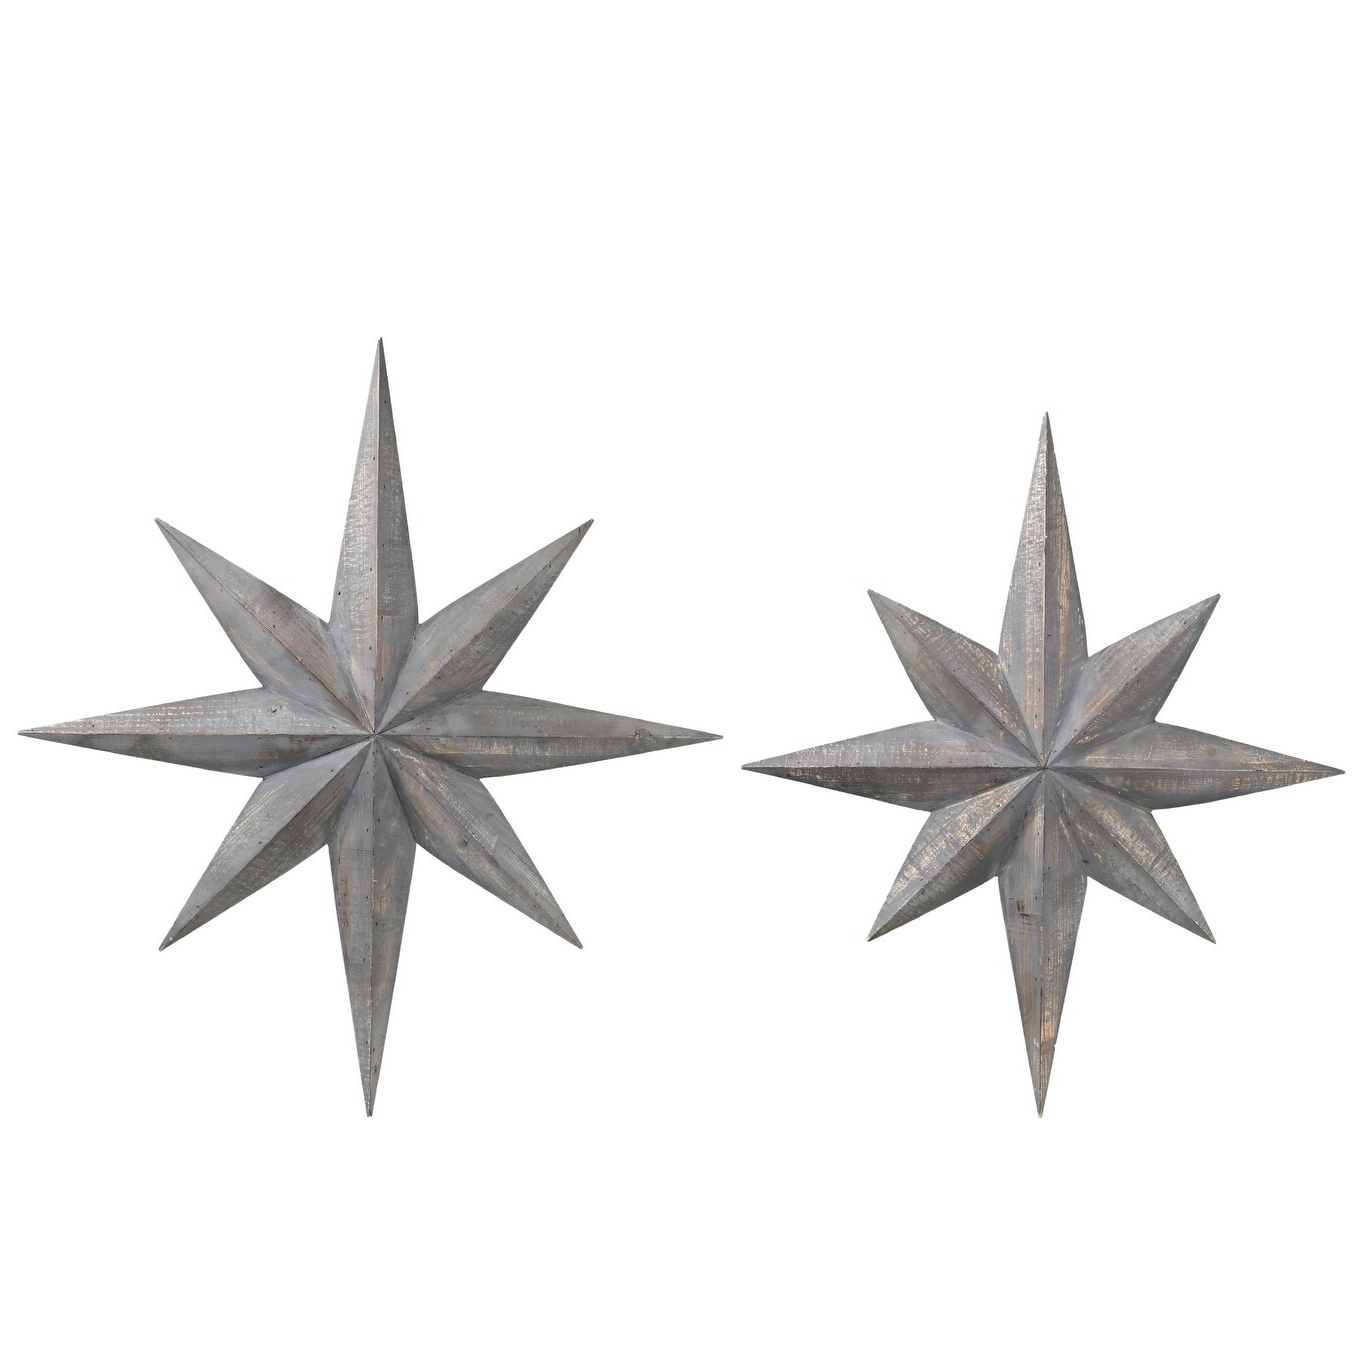 Widely Used Utc40891: Wood Bursting Star Wall Decor With Metal Back Hanger Set Of Two Washed Finish Gray Within Barn Star Wall Décor (set Of 2) (View 12 of 20)